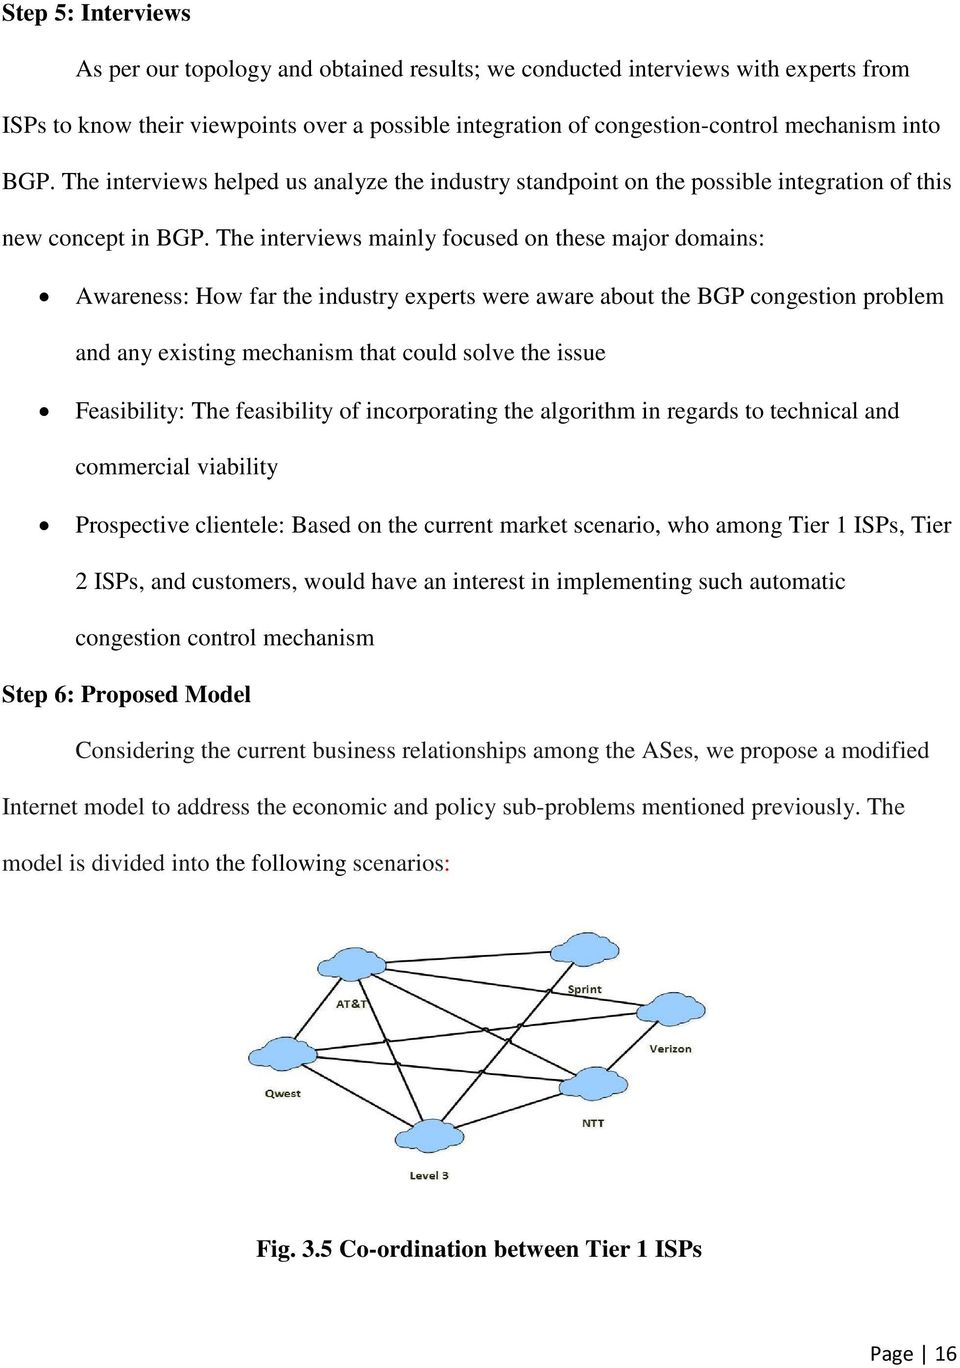 The interviews mainly focused on these major domains: Awareness: How far the industry experts were aware about the BGP congestion problem and any existing mechanism that could solve the issue